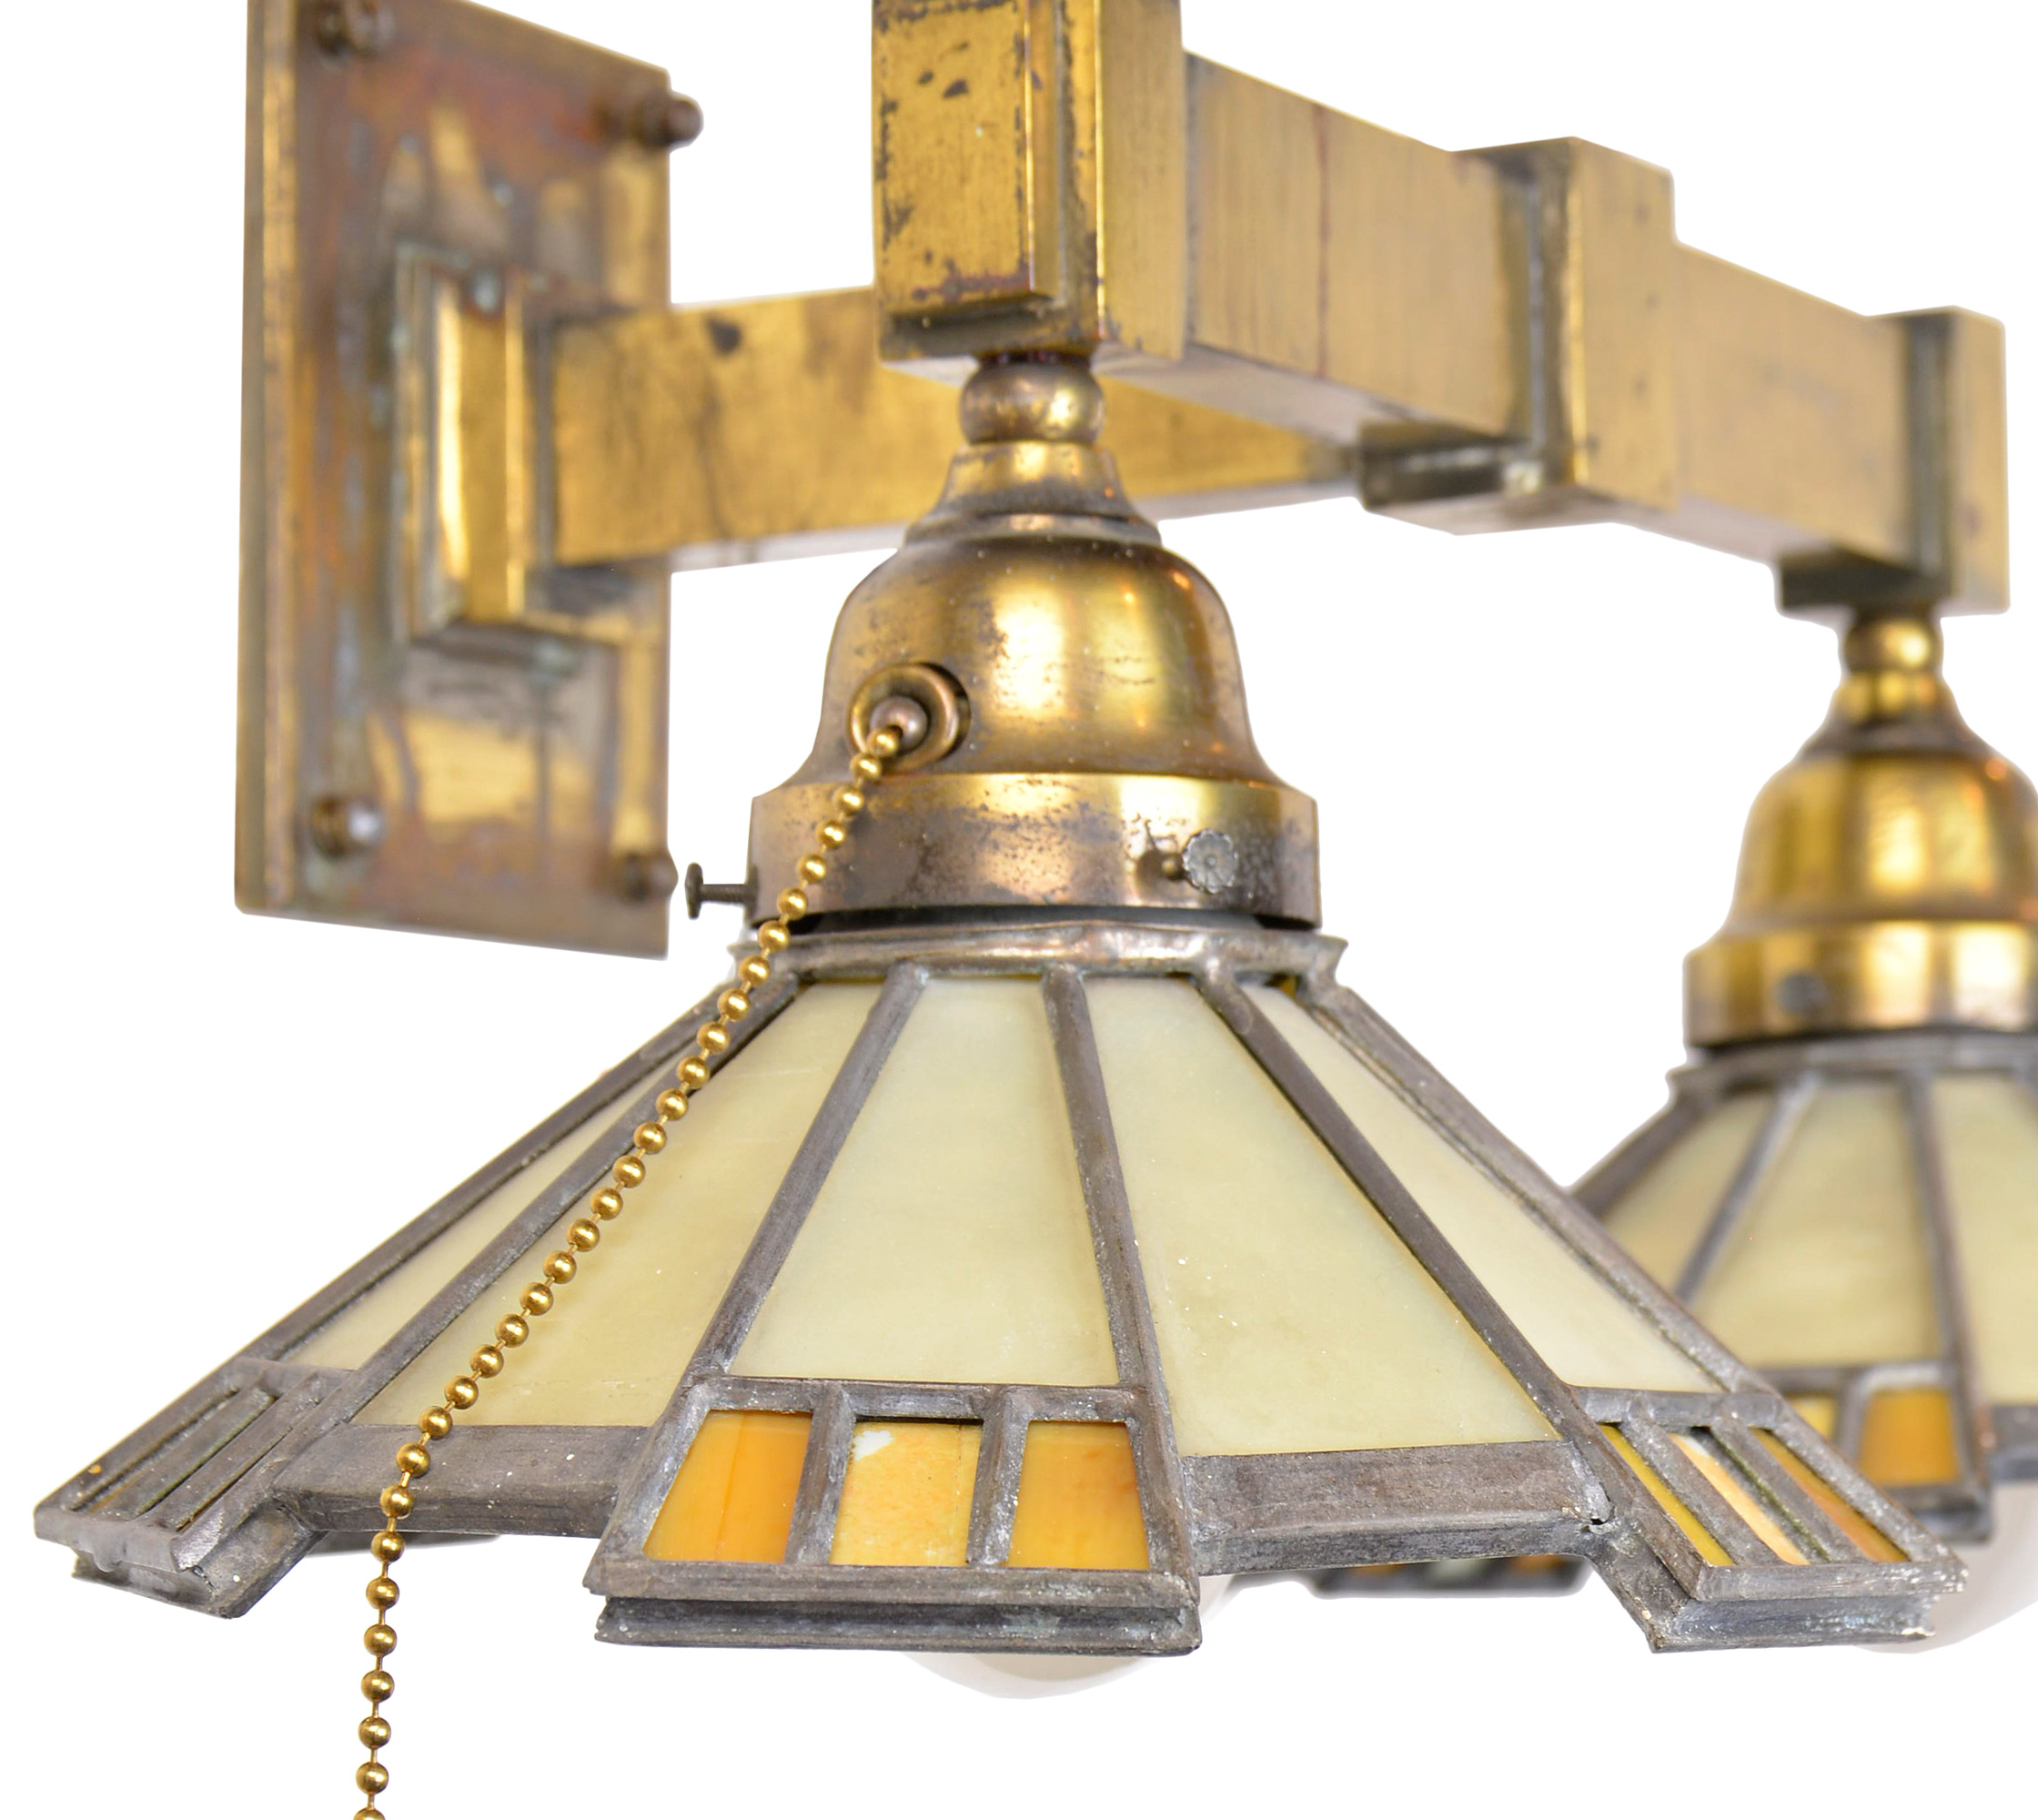 46552-mission-two-shade-sconce-detail.jpg